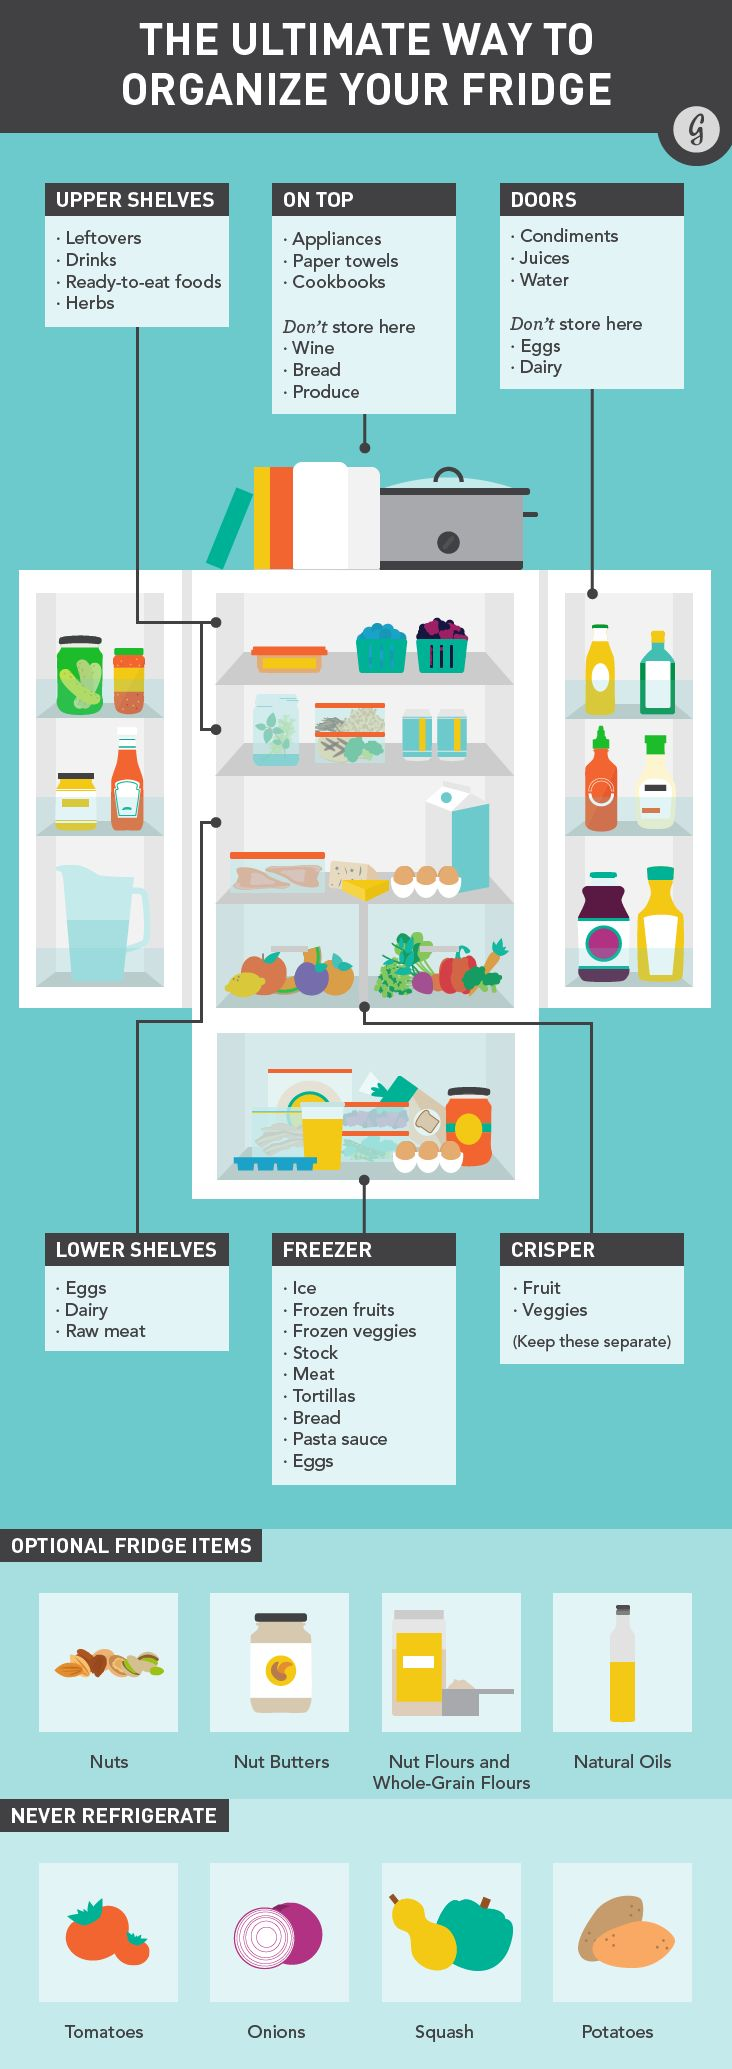 If you organize your fridge right, food stays fresher, longer